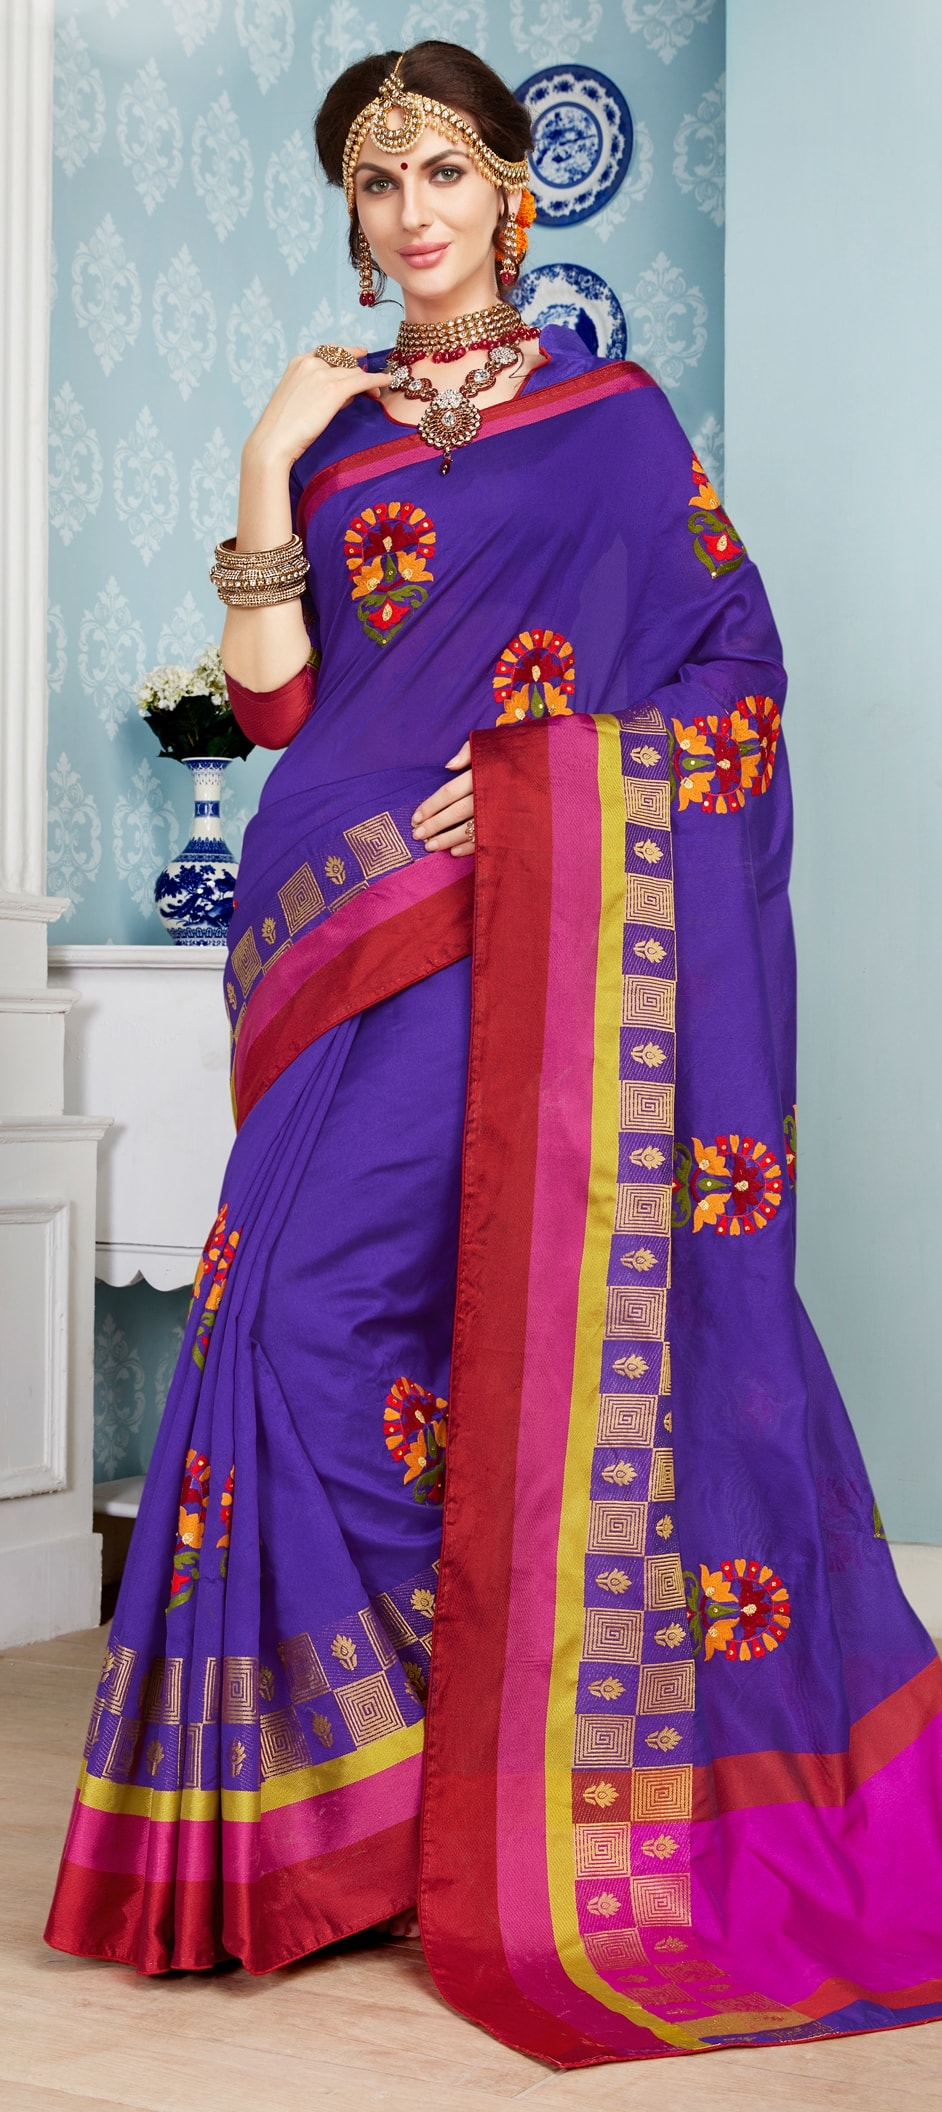 774545: Purple and Violet color family Silk Sarees with matching ...